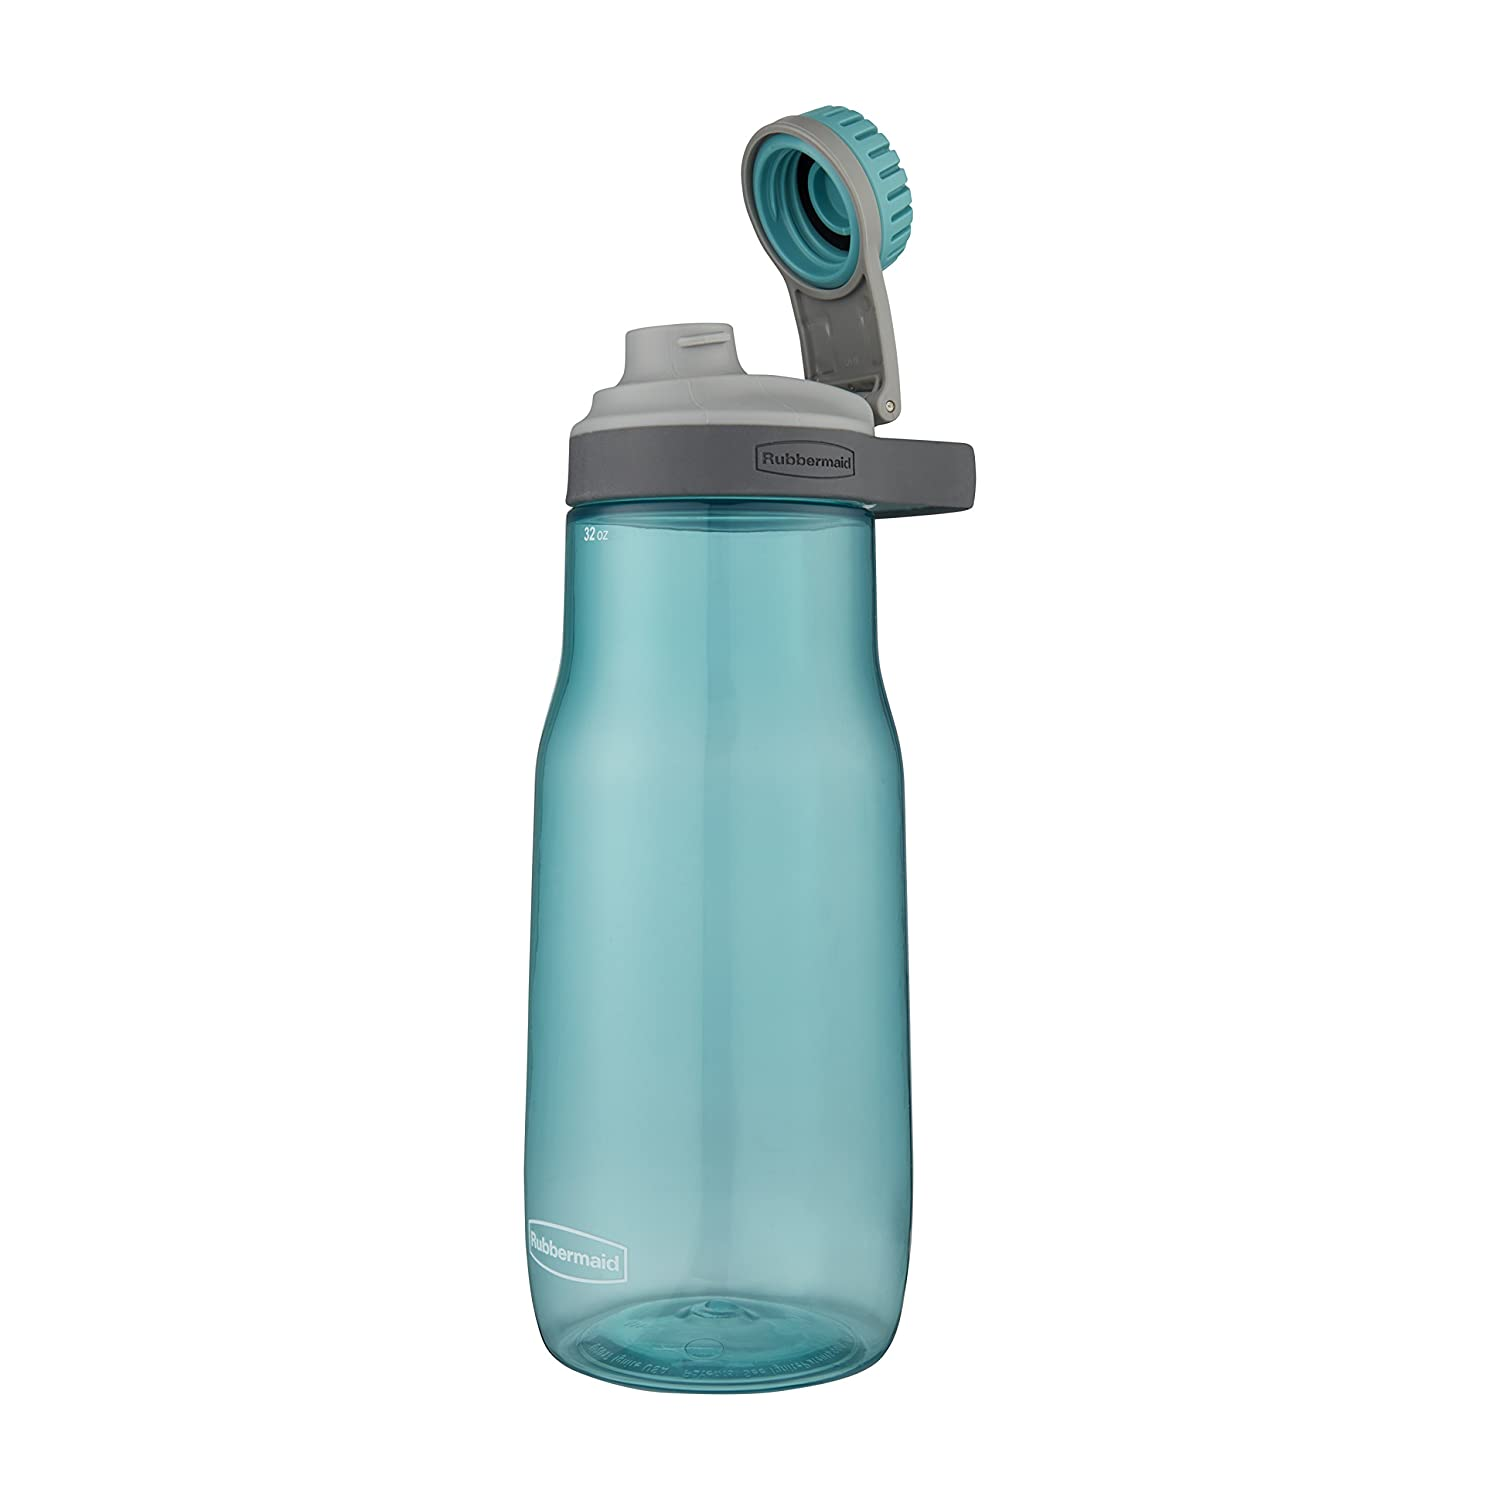 Rubbermaid Leak-Proof Chug Water Bottle, 32 oz, Aqua Waters